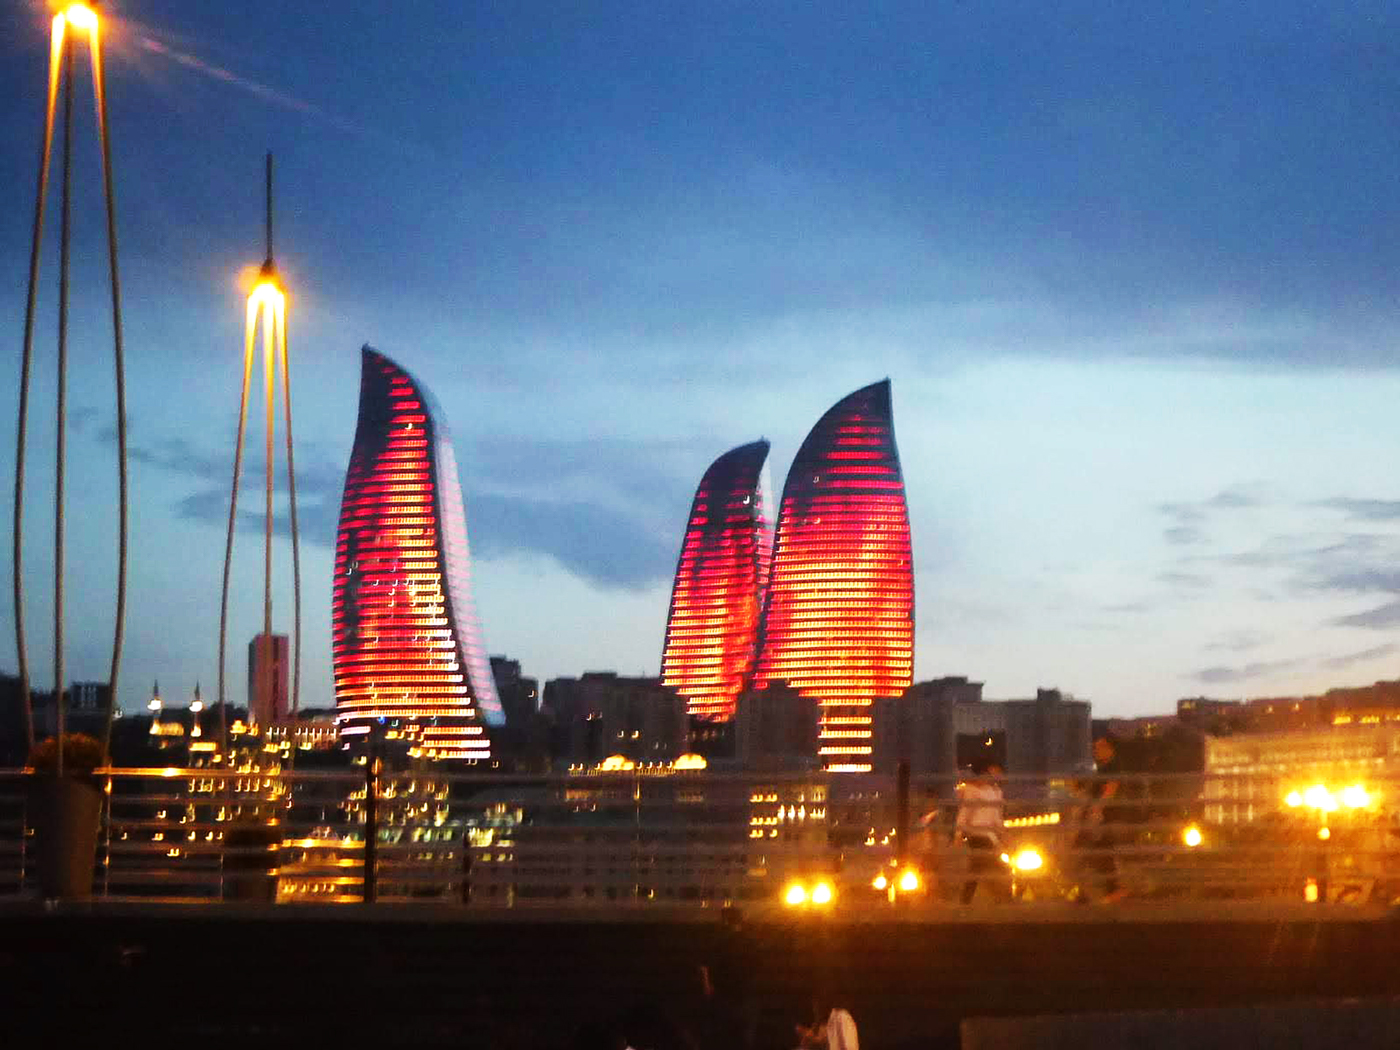 Cycling, Azerbaijan Cycling, crossing the Caucasus region by bicycle, flame Towers in Baku. Cycling travel, biketouring, cycling Caucasus, flame Towers in Baku.